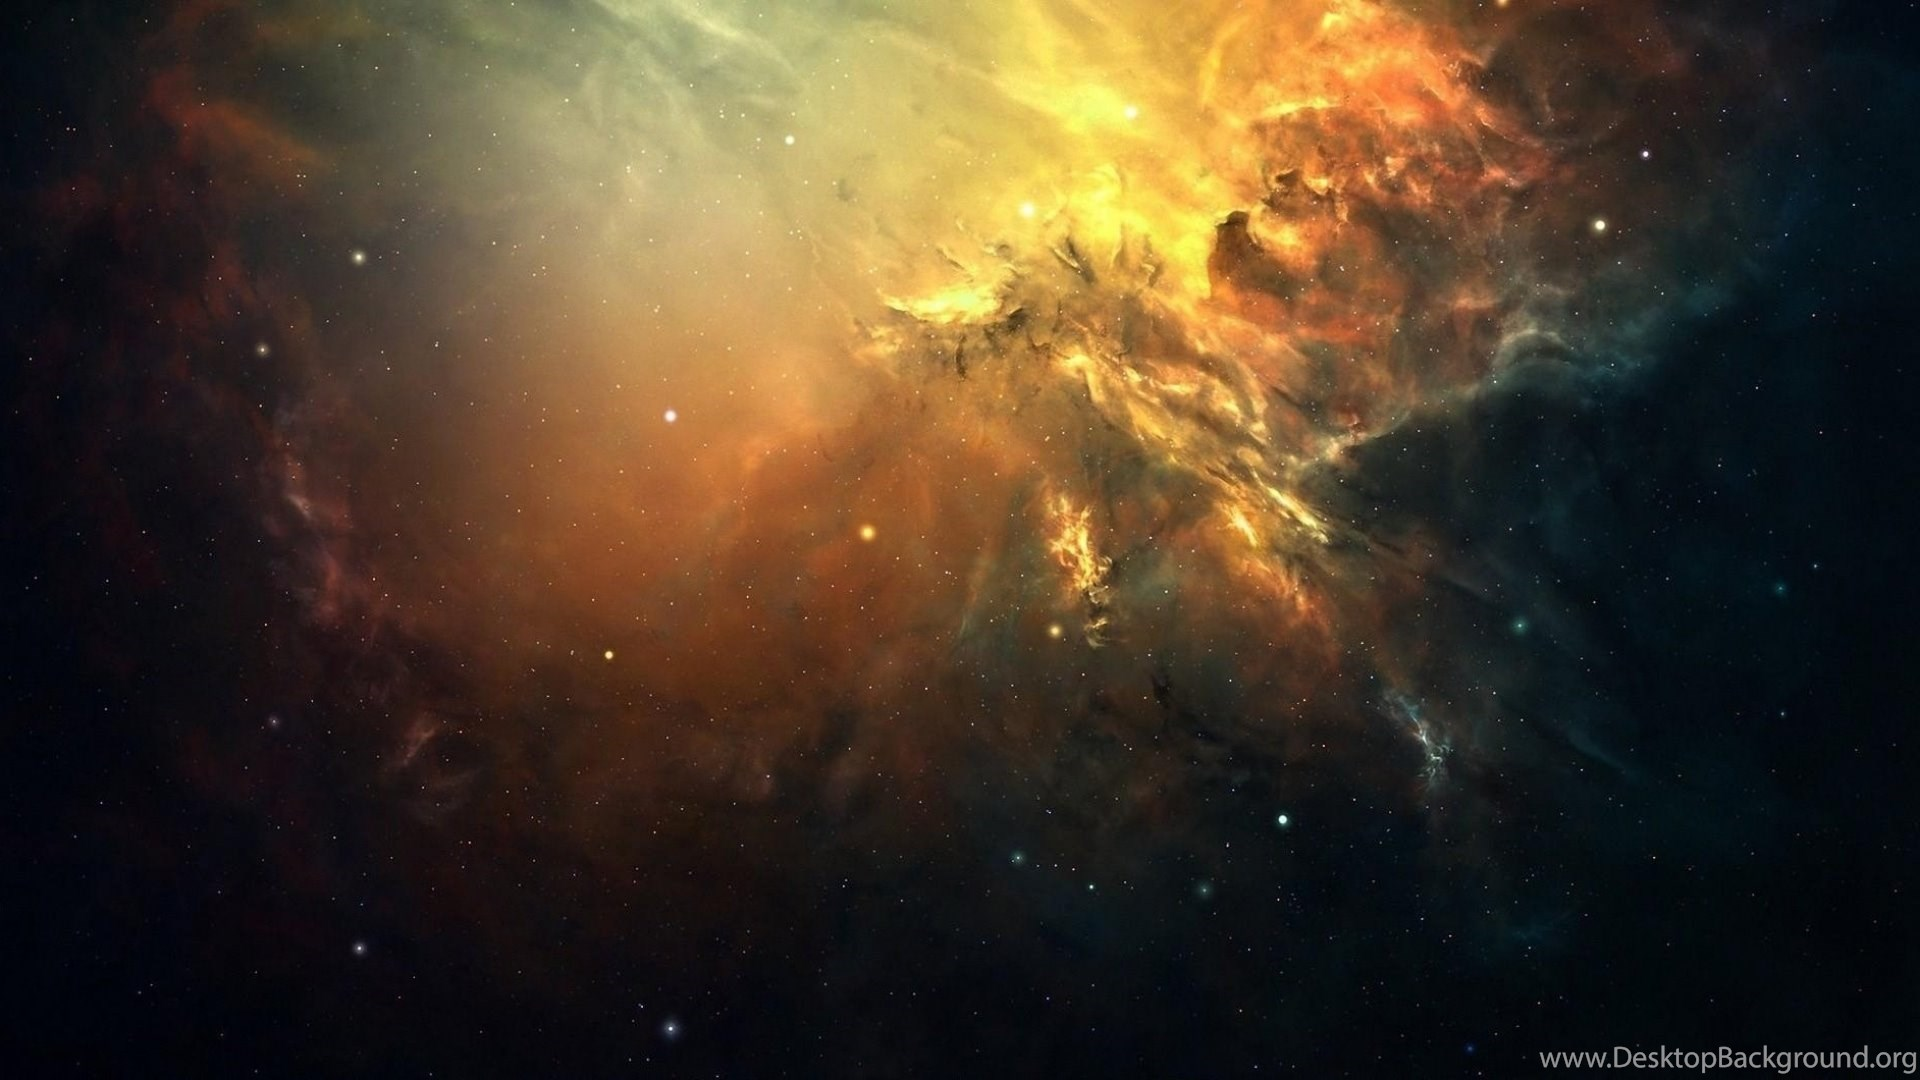 Galaxy Hd Wallpapers 1080p 75 Images: Full HD 1080p Galaxy Wallpapers HD, Desktop Backgrounds